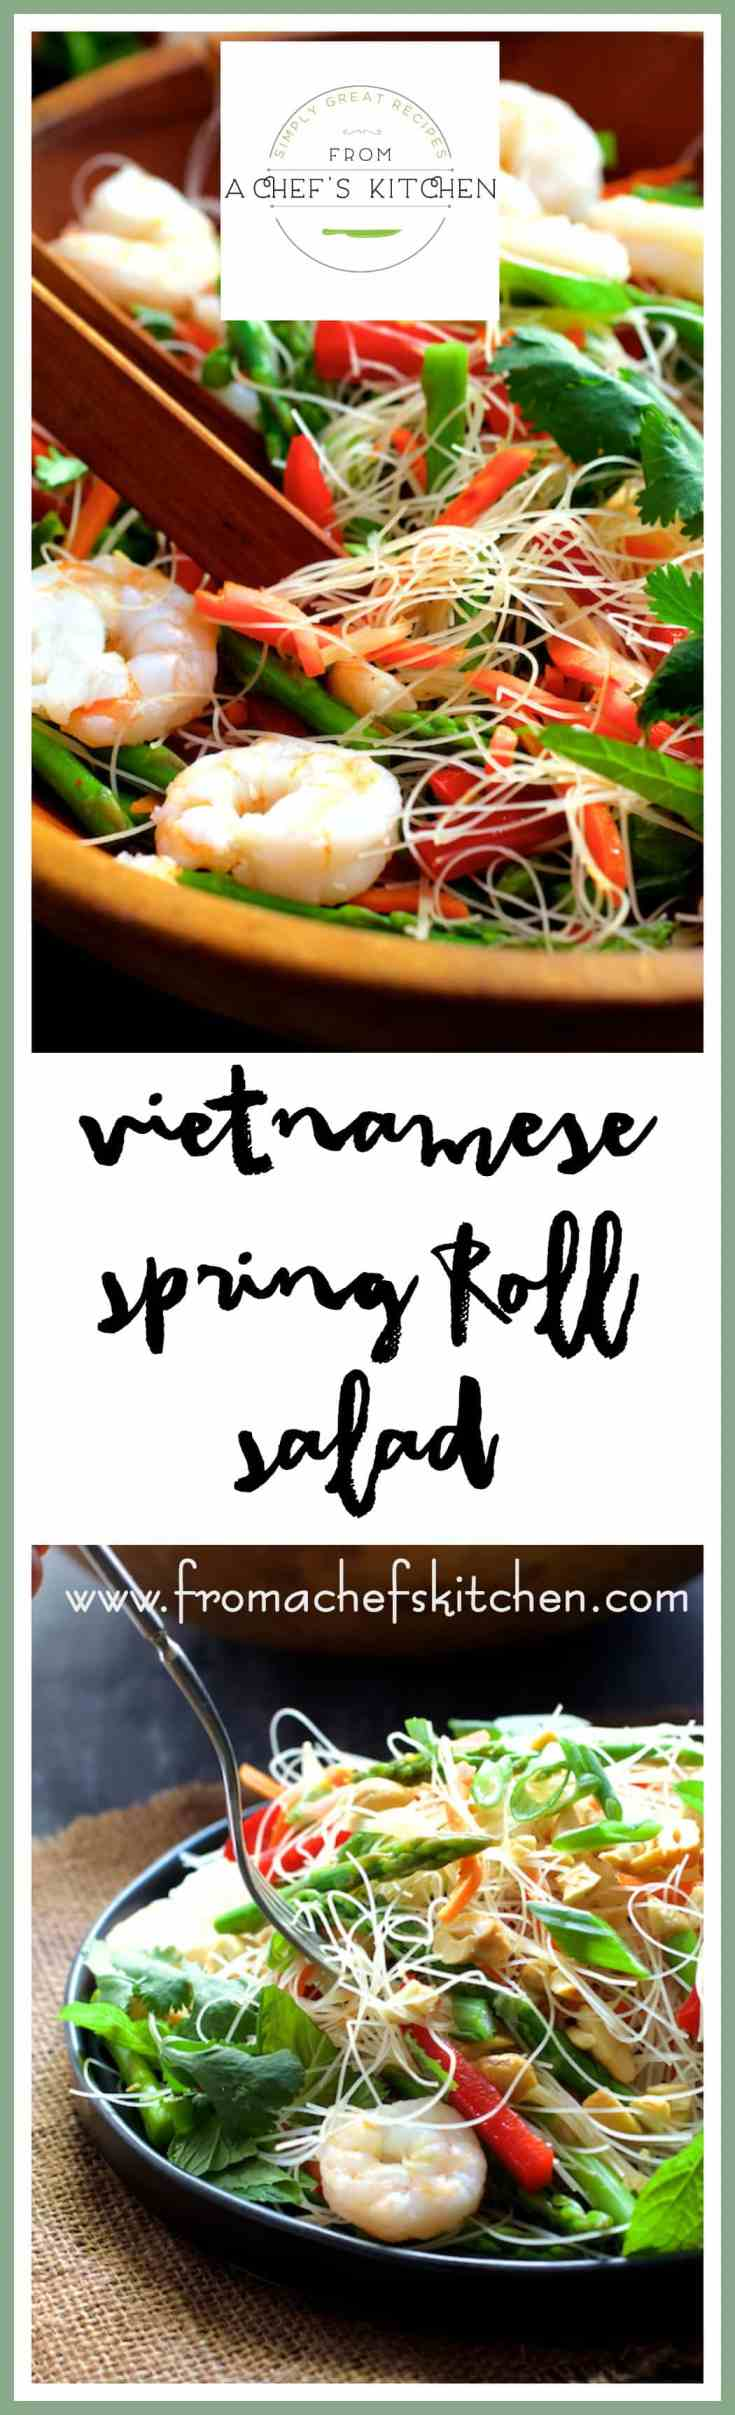 Vietnamese Spring Roll Salad is everything you love about spring rolls without all the rolling!  Simply toss all the ingredients together for this fresh, amazing Vietnamese-inspired salad! #vietnamese #vietnamesefood #springroll #salad